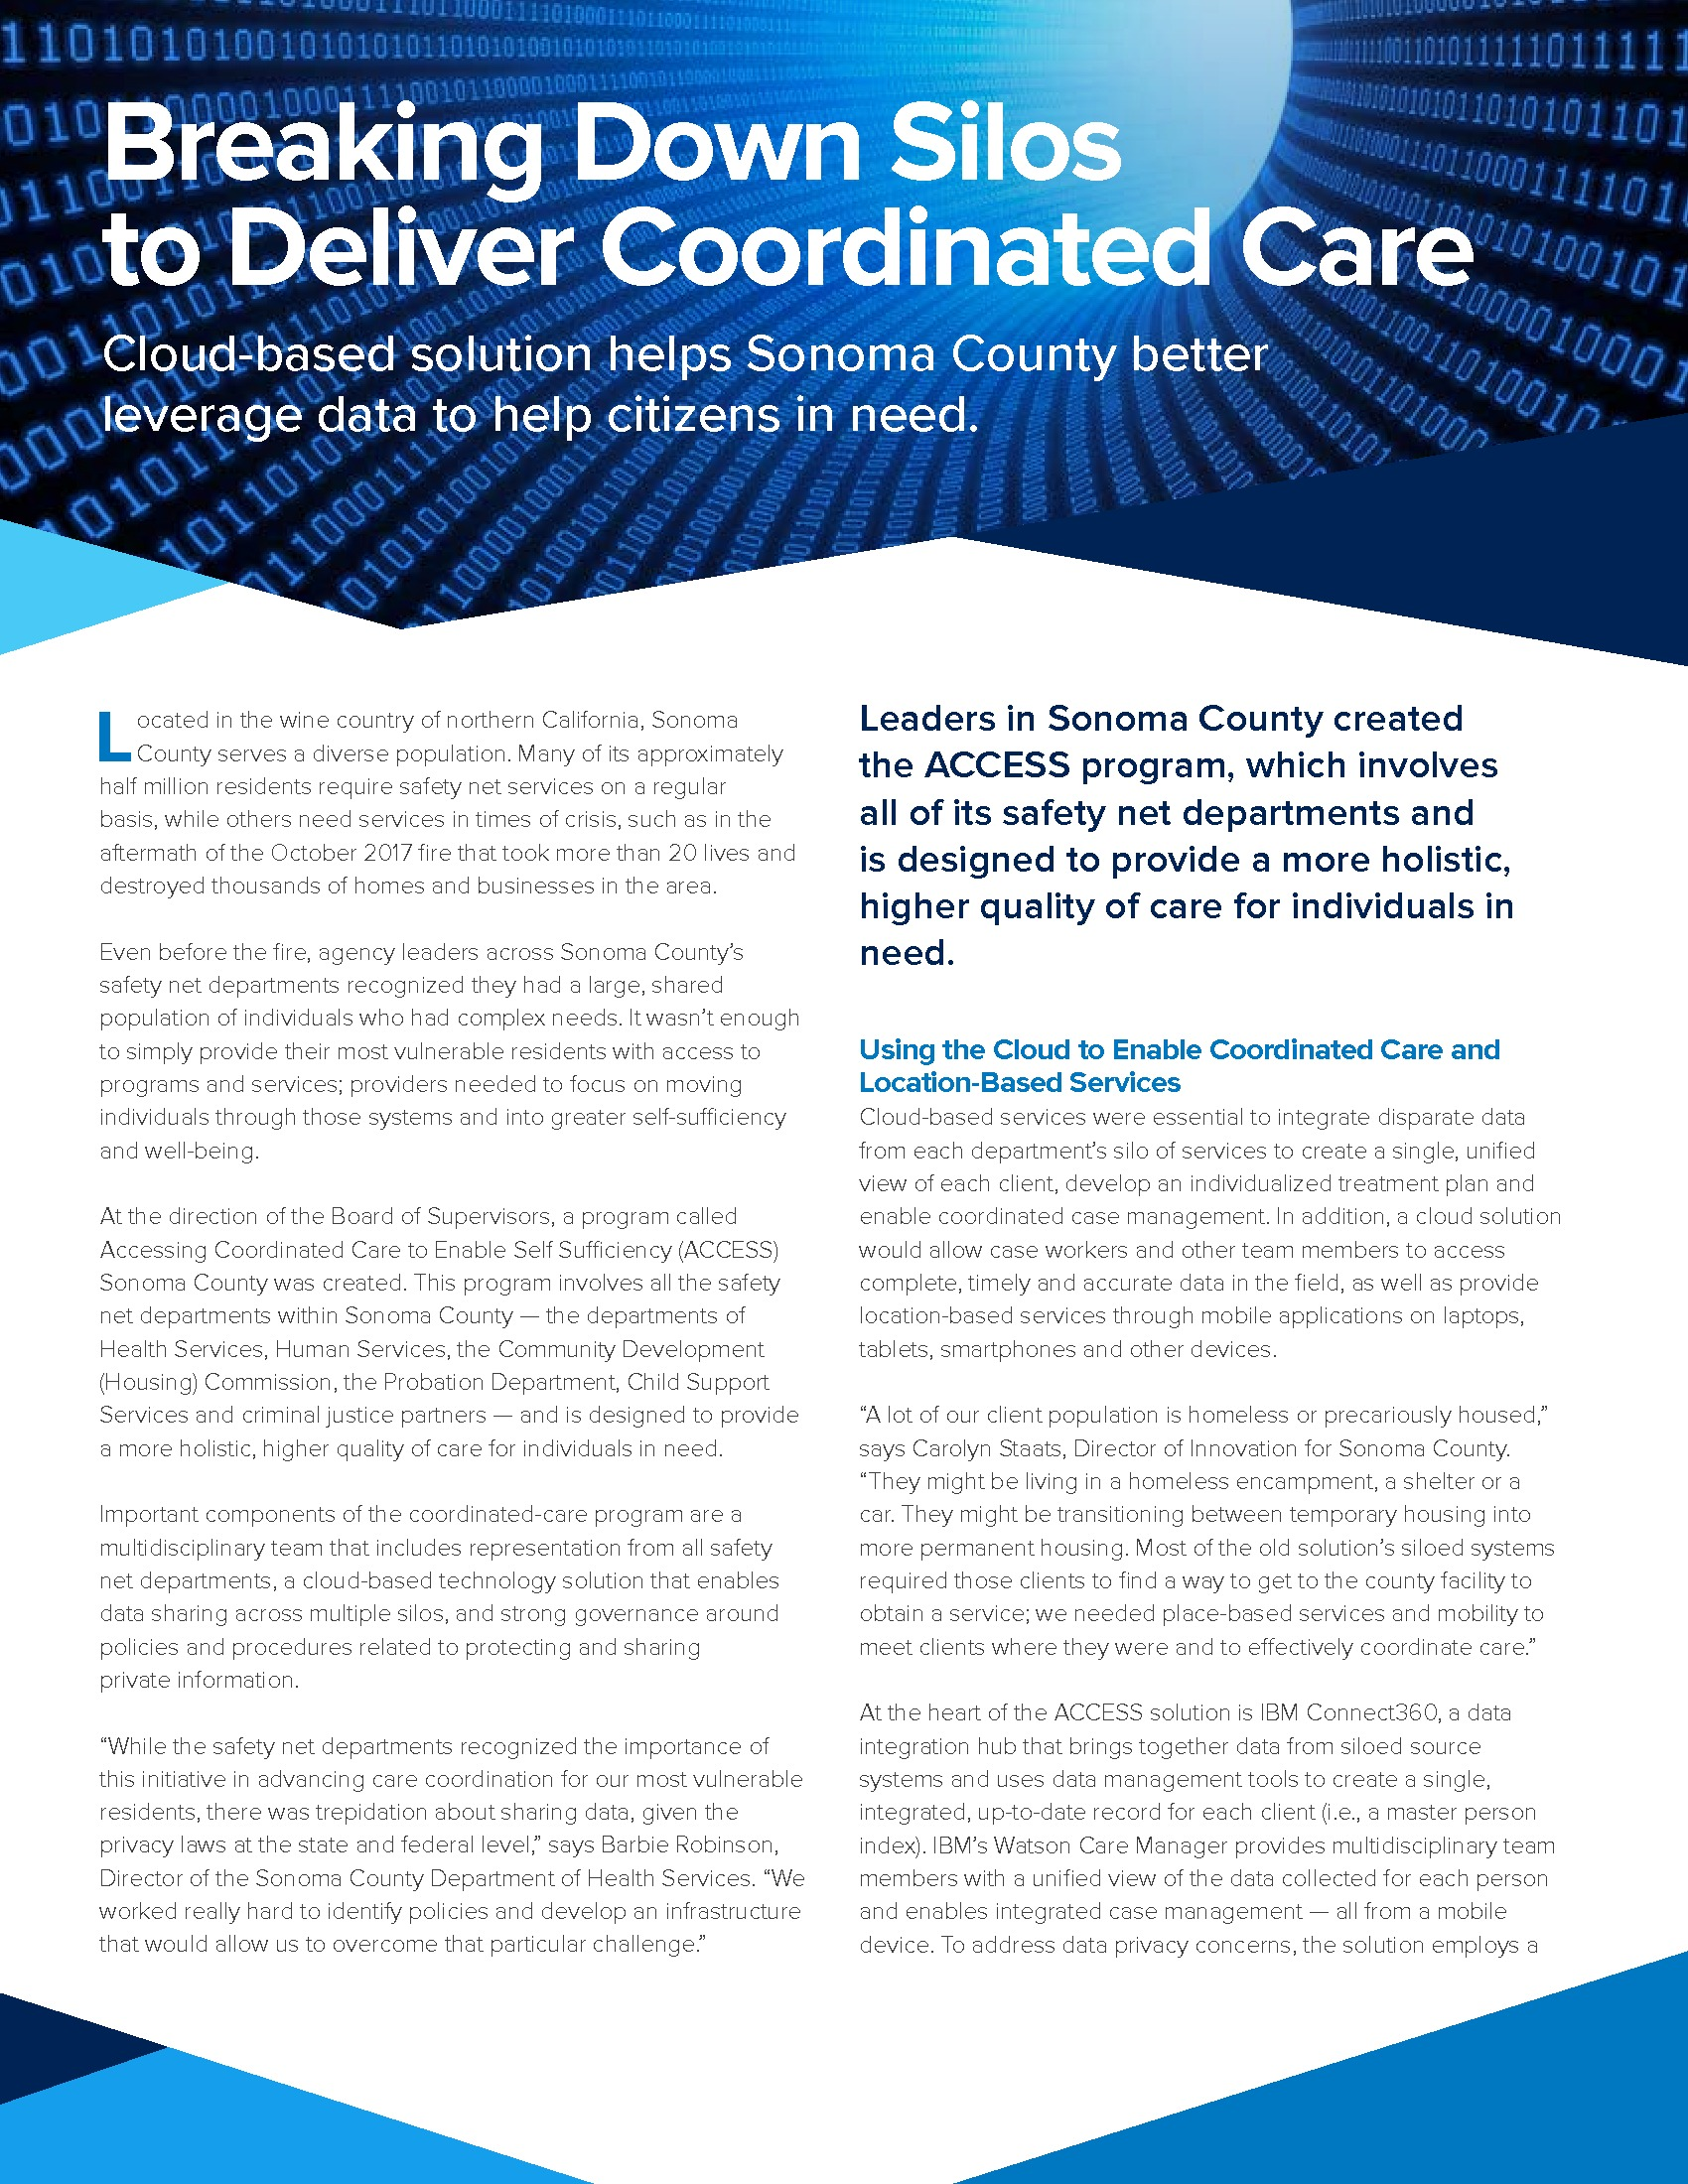 Paper: Breaking Down Silos to Deliver Coordinated Care